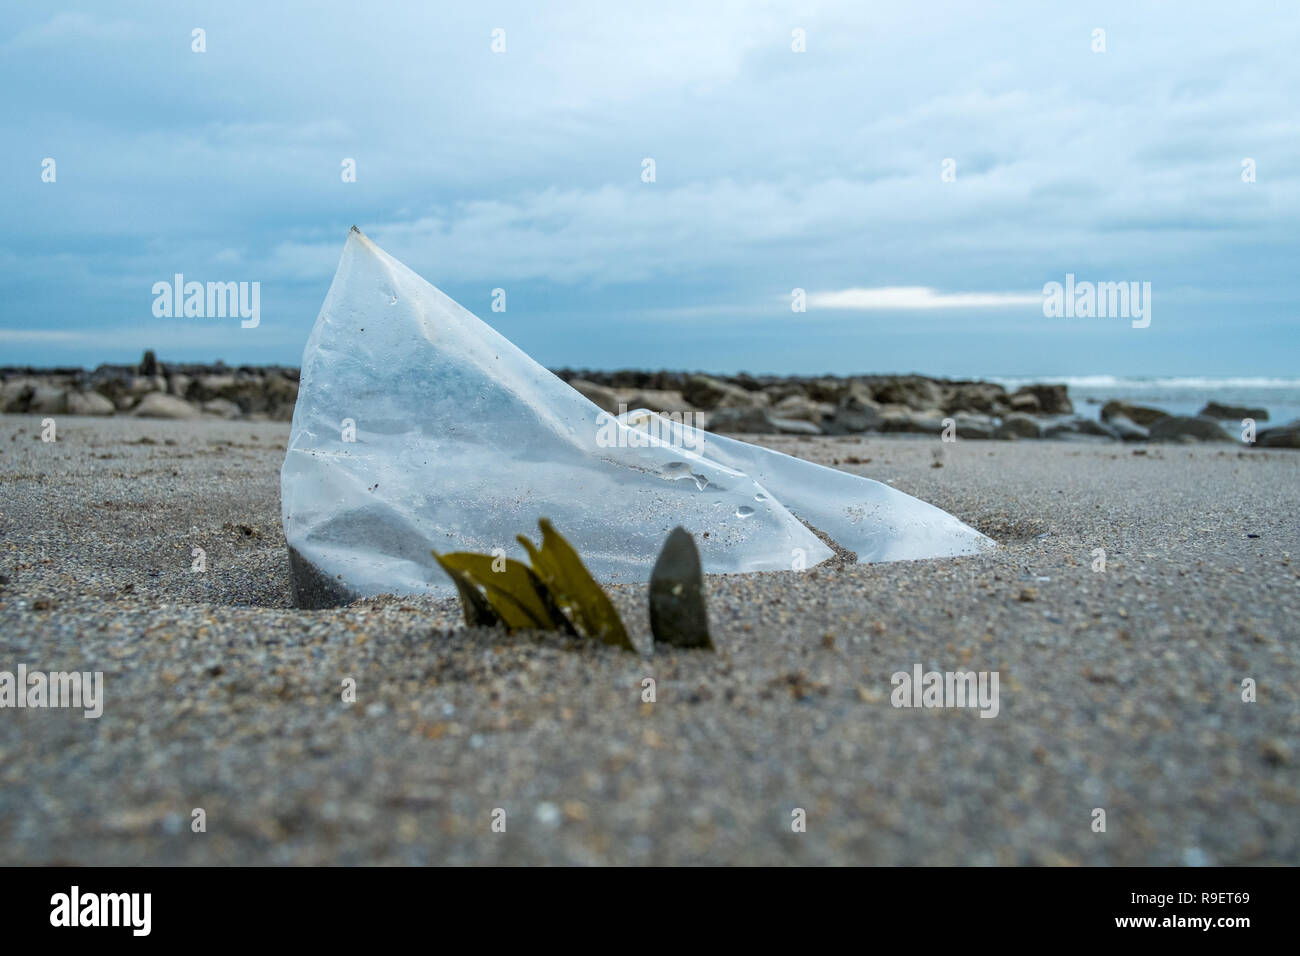 Plastic objects washed up on beach or in the street - Stock Image